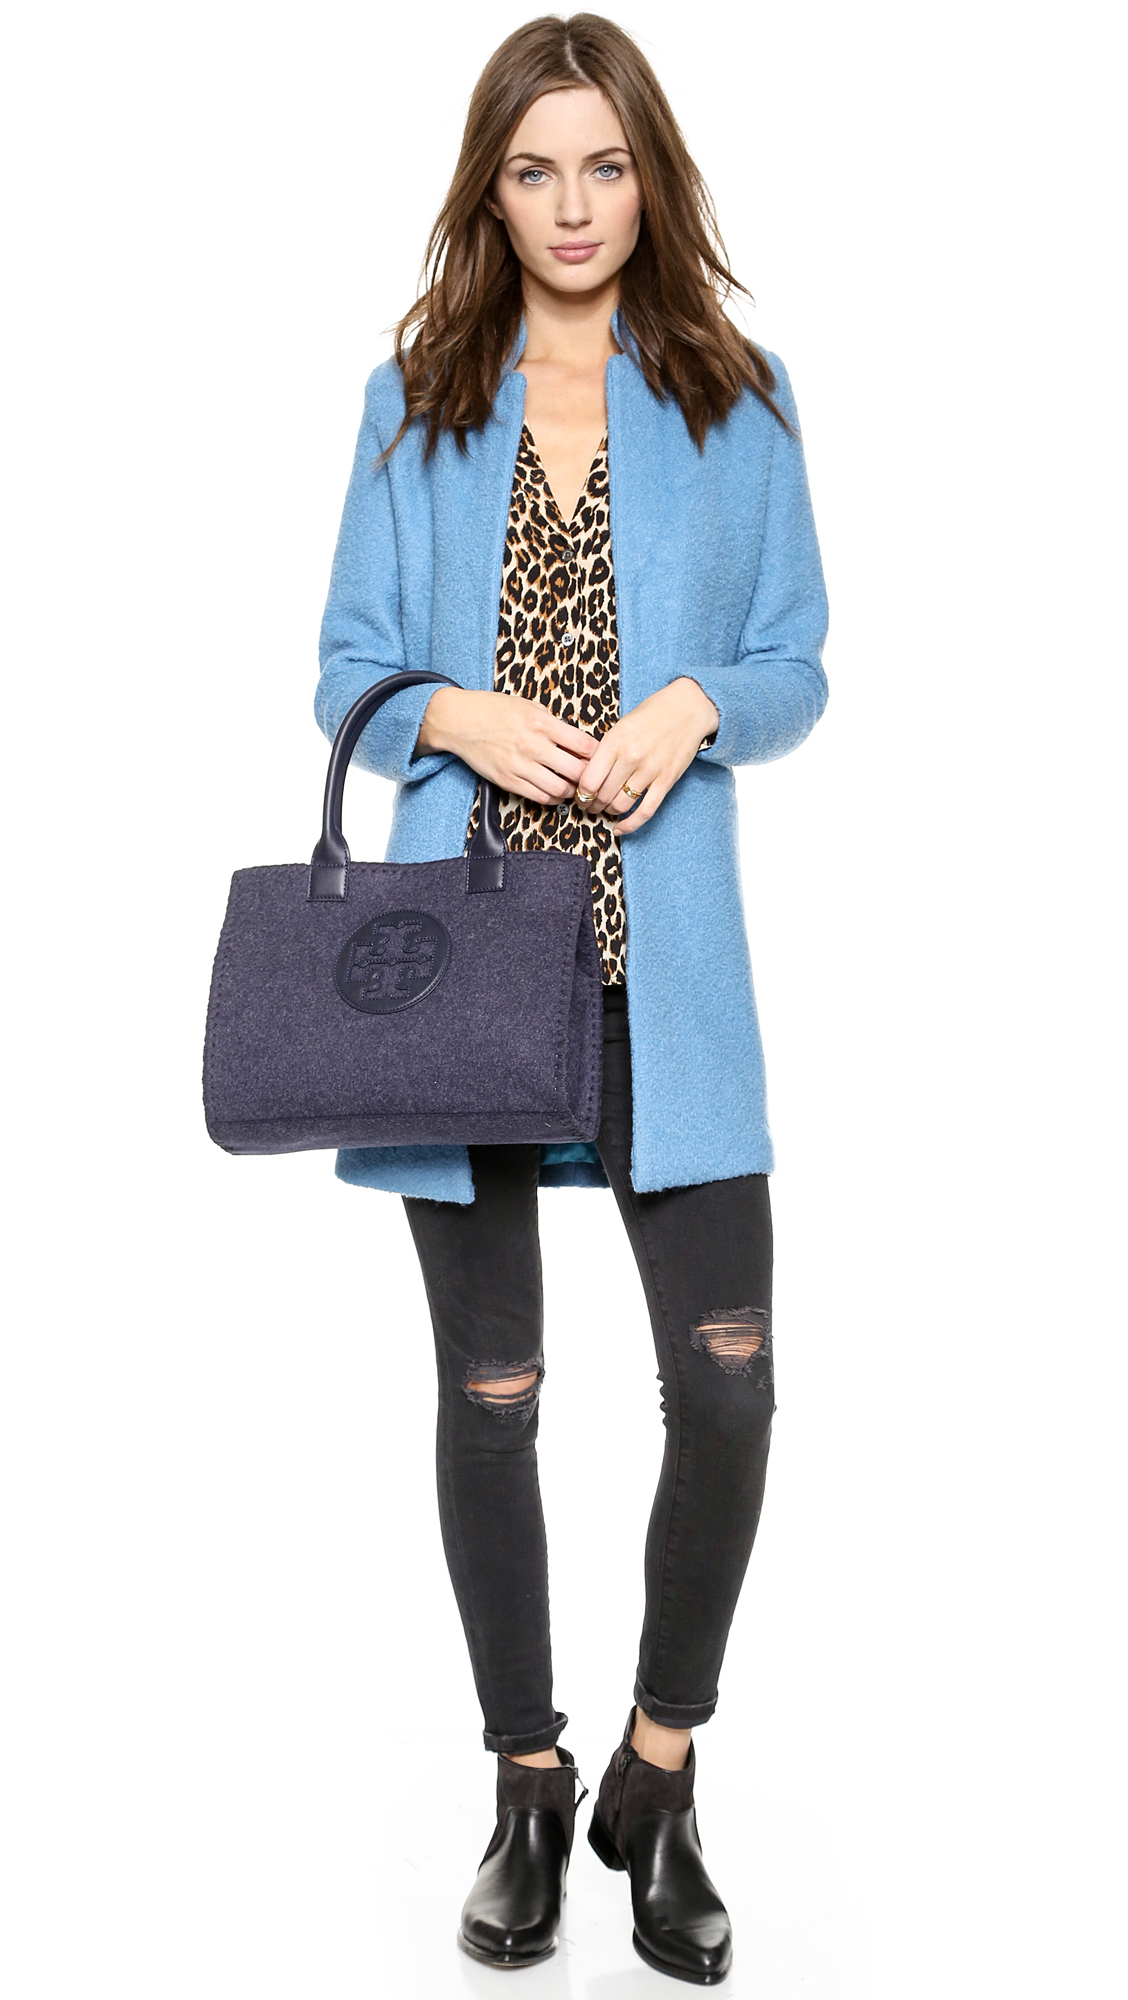 0046be3cb379 Lyst - Tory Burch Ella Stitched Mini Tote - Tory Navy in Blue